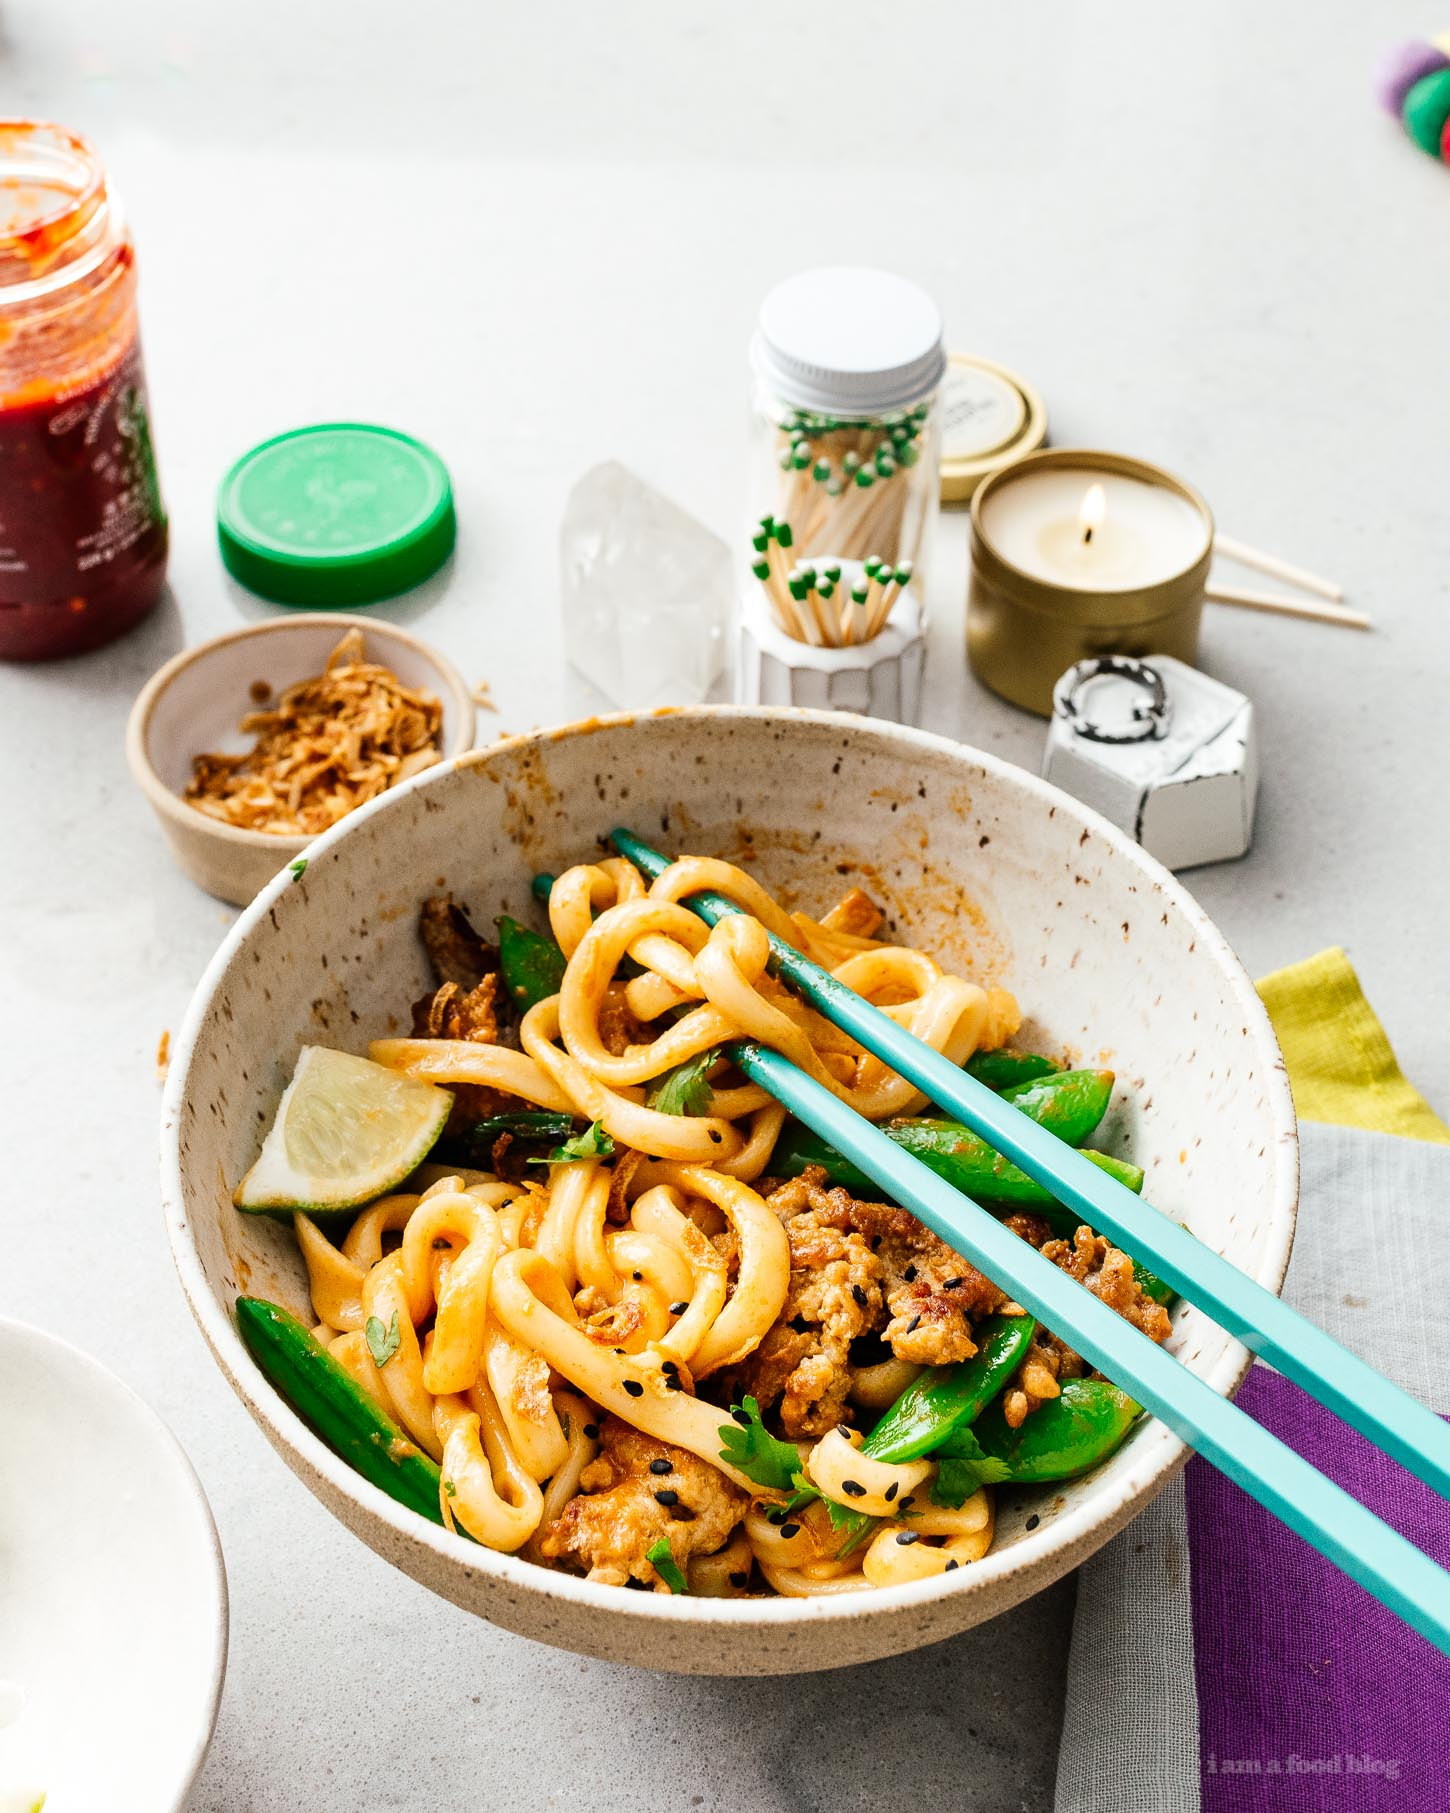 If you're looking for a quick and easy stir fry that's full of flavor, look no further! You're just 15 minutes away from a creamy coconut curry and crispy pork udon stir fry. Minimal chopping, one pan, spicy noodle-y goodness. #stirfry #recipes #dinner #thaifood #thaicurry #weeknight